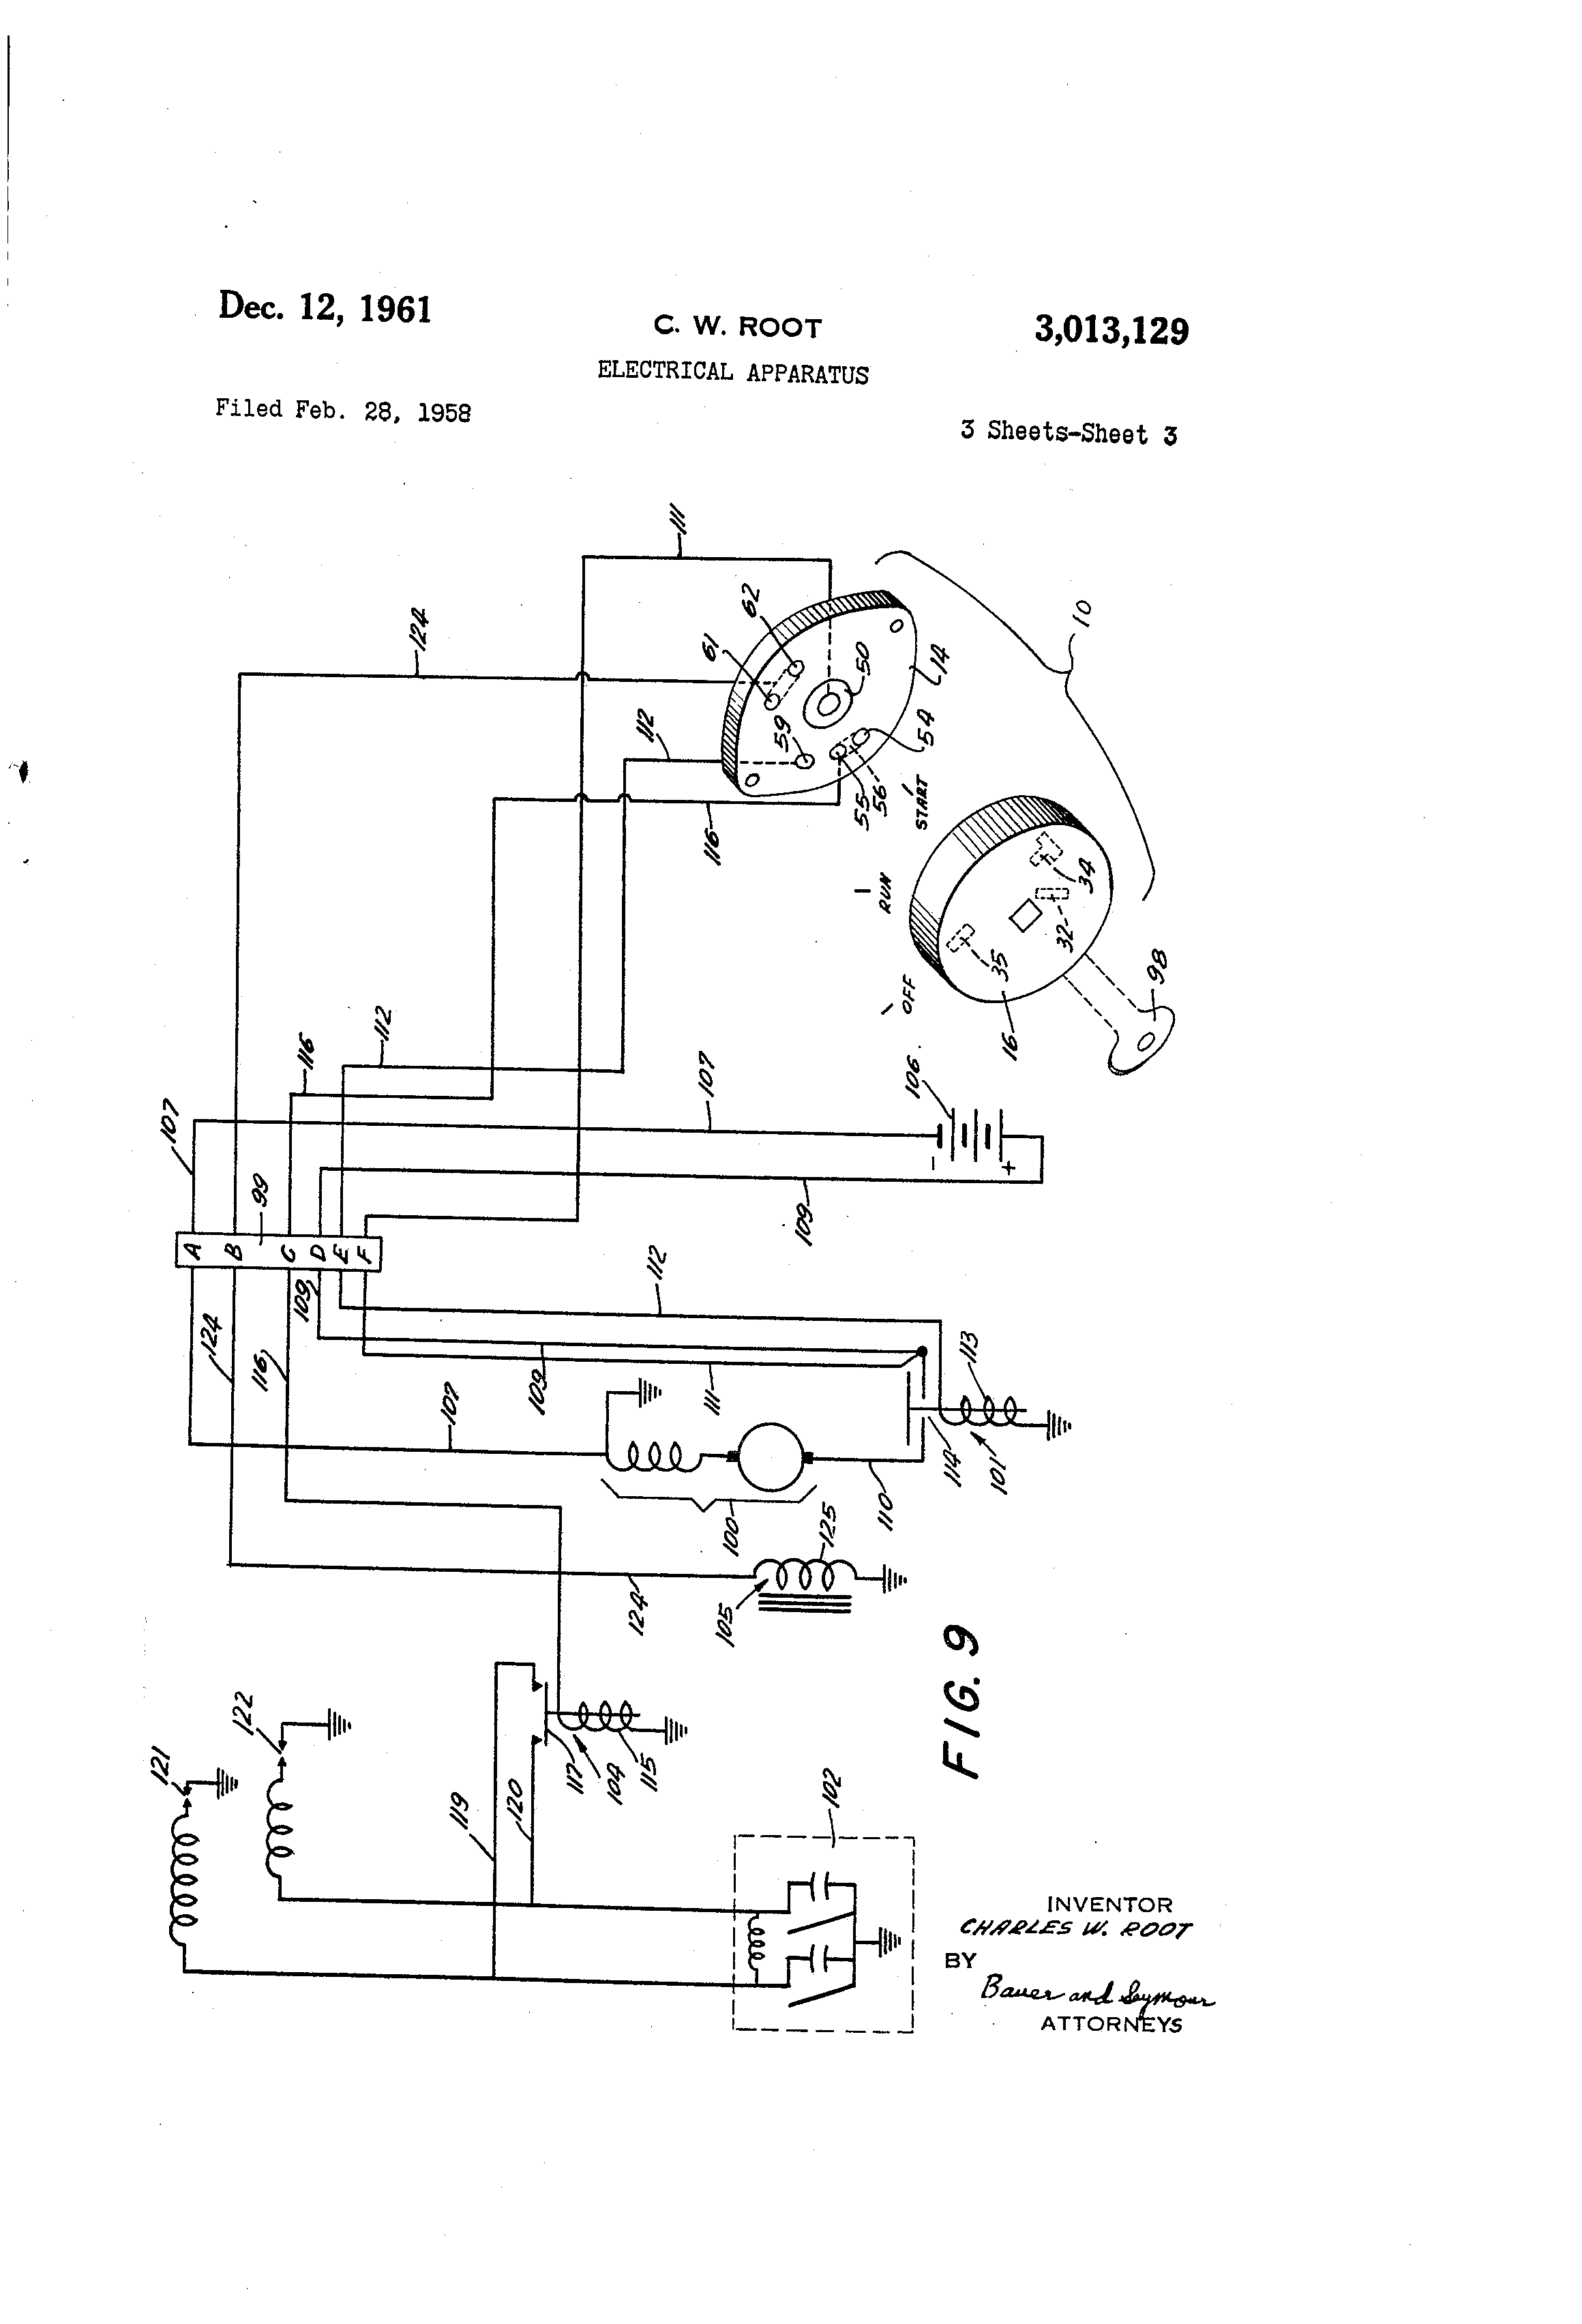 Wiring Diagram Together With Wiring Diagram On Wiring Diagram 700r4